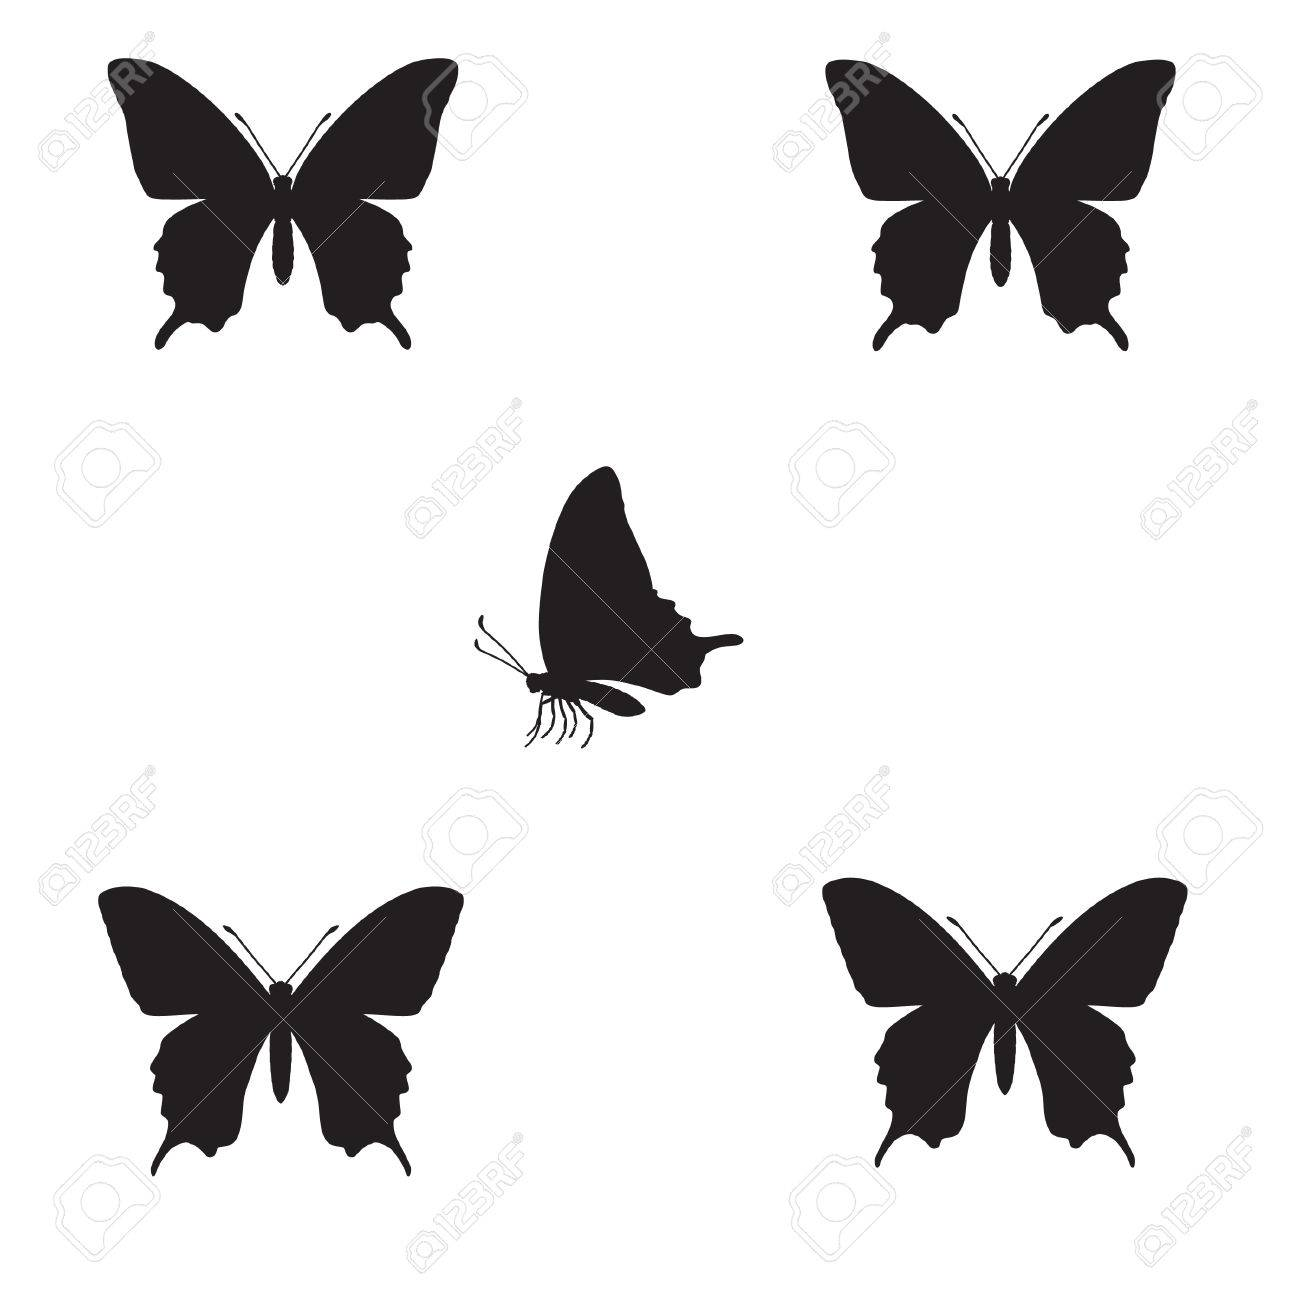 silhouette of butterfly on a white background.vector Stock Vector - 4821804